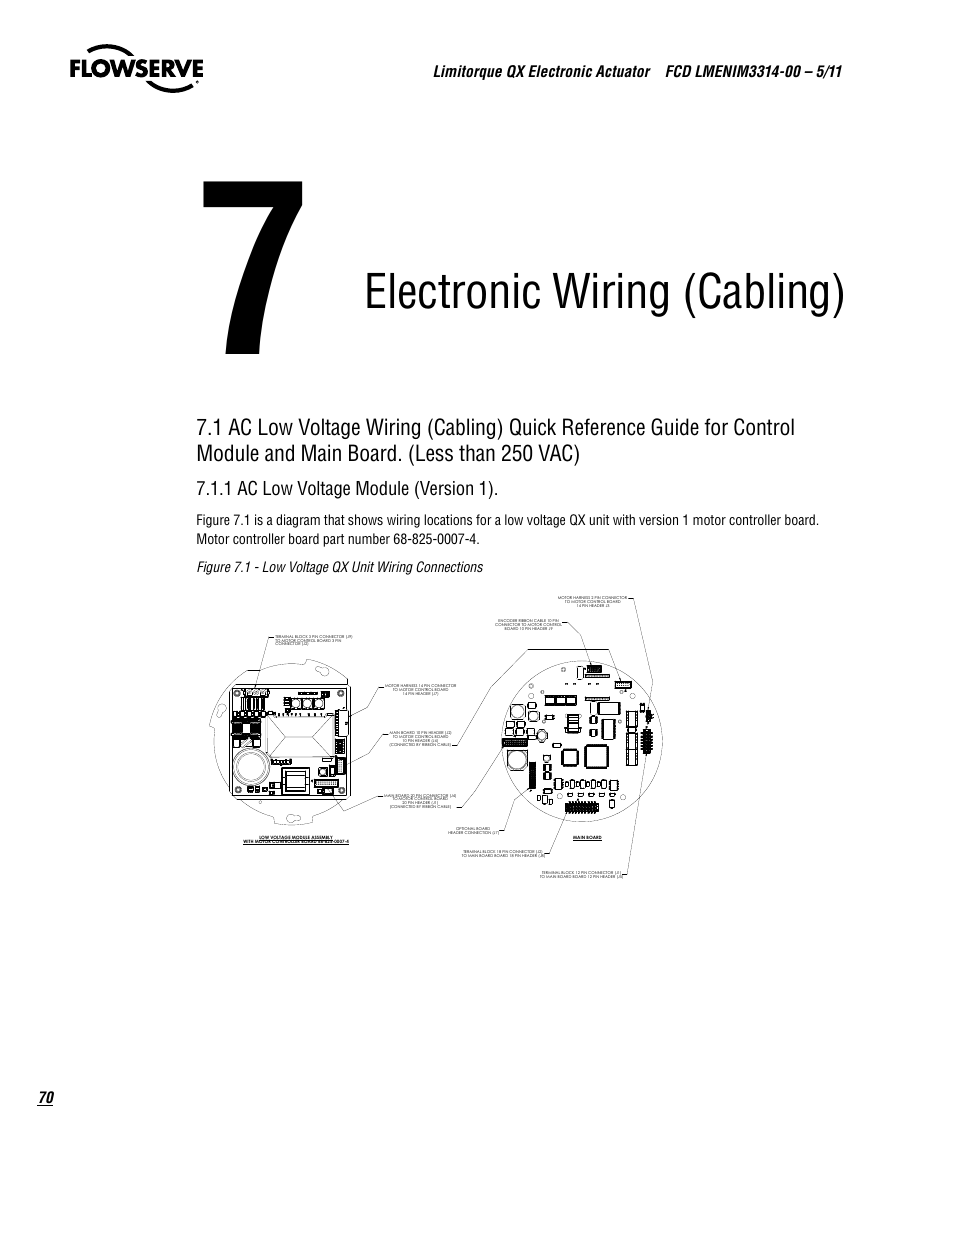 flowserve-qx-limitorque-page70 Qx Motor Wiring Diagram on bodine electric, dc electric, ac blower,